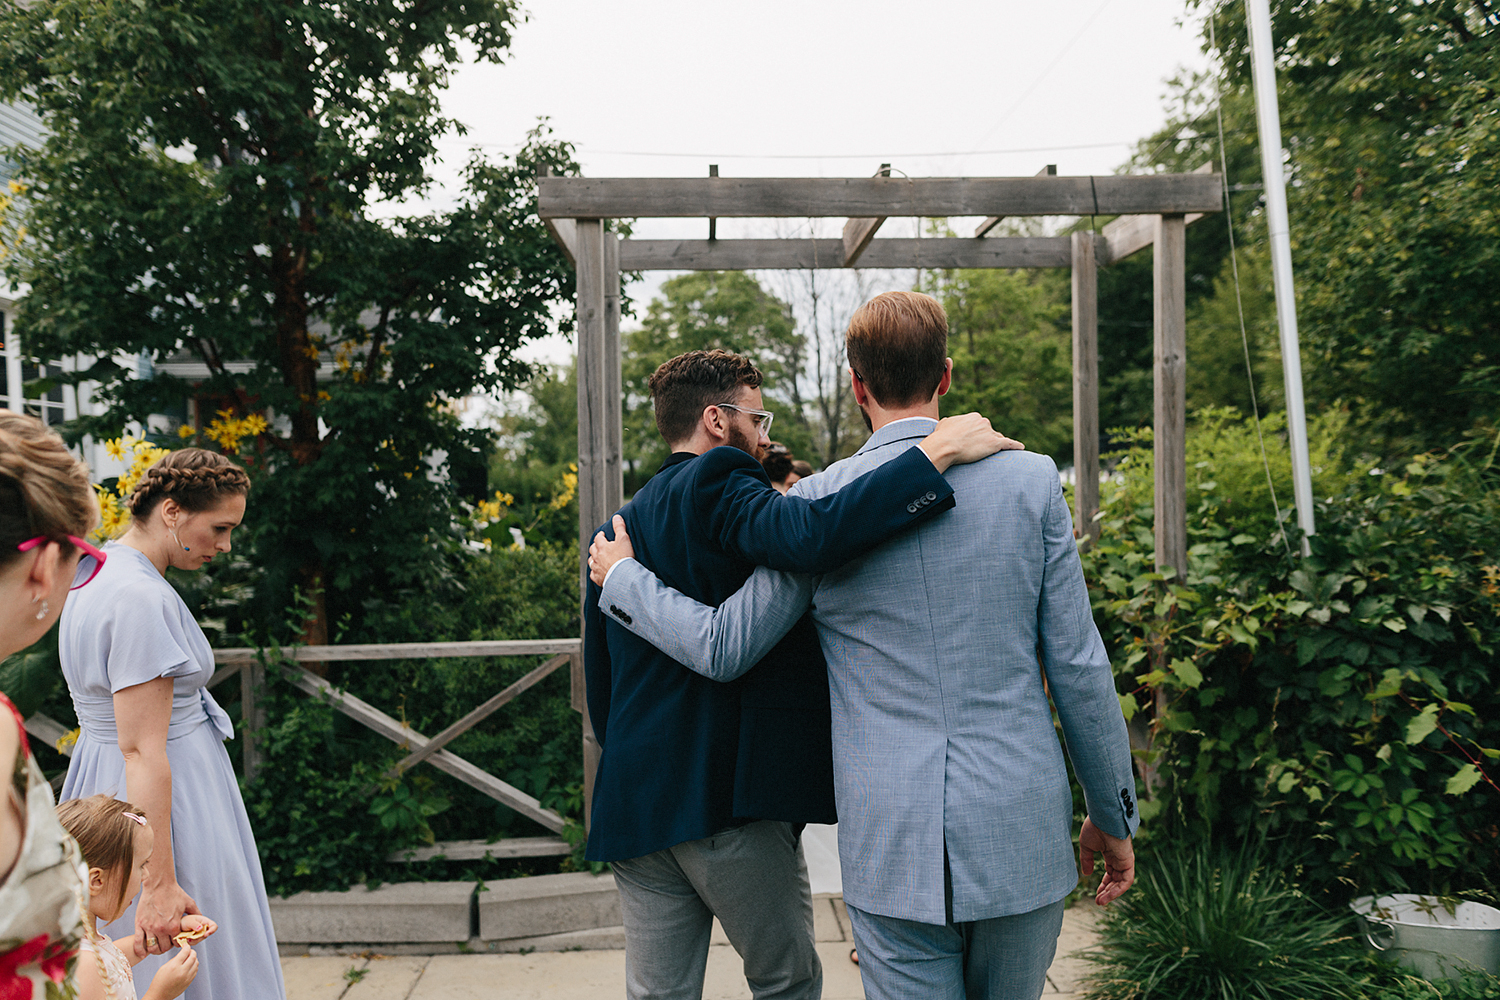 Toronto-Island-Wedding-Toronto-Best-Film-Wedding-Photographers-3b-photography-analog-photography-wards-island-clubhouse-junebug-weddings-vintage-venue-reception-cocktail-hour-candid-guests-mingling-hugging-groom.jpg